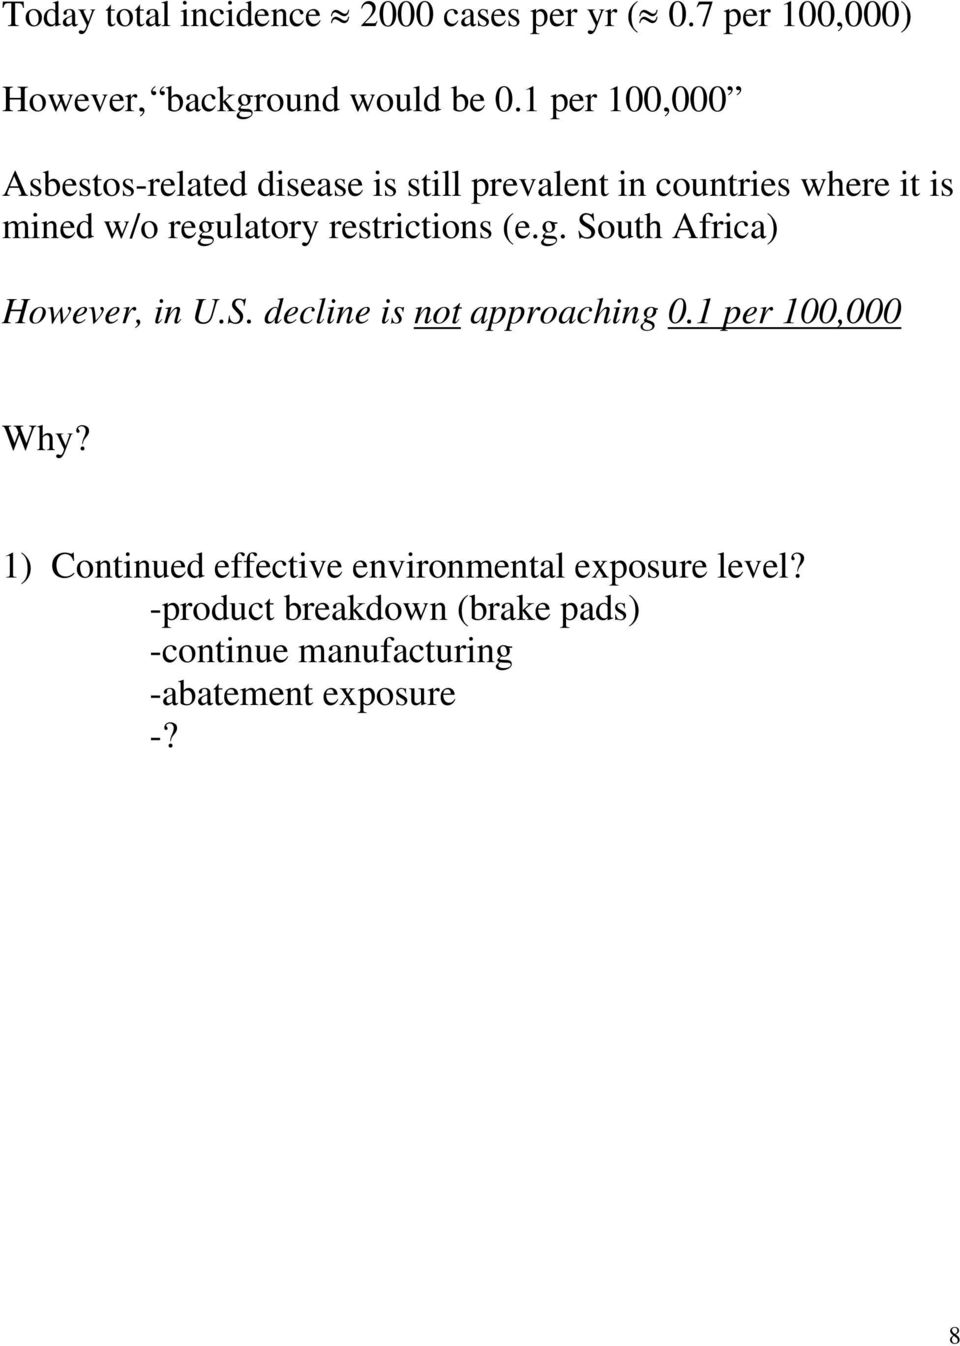 restrictions (e.g. South Africa) However, in U.S. decline is not approaching 0.1 per 100,000 Why?